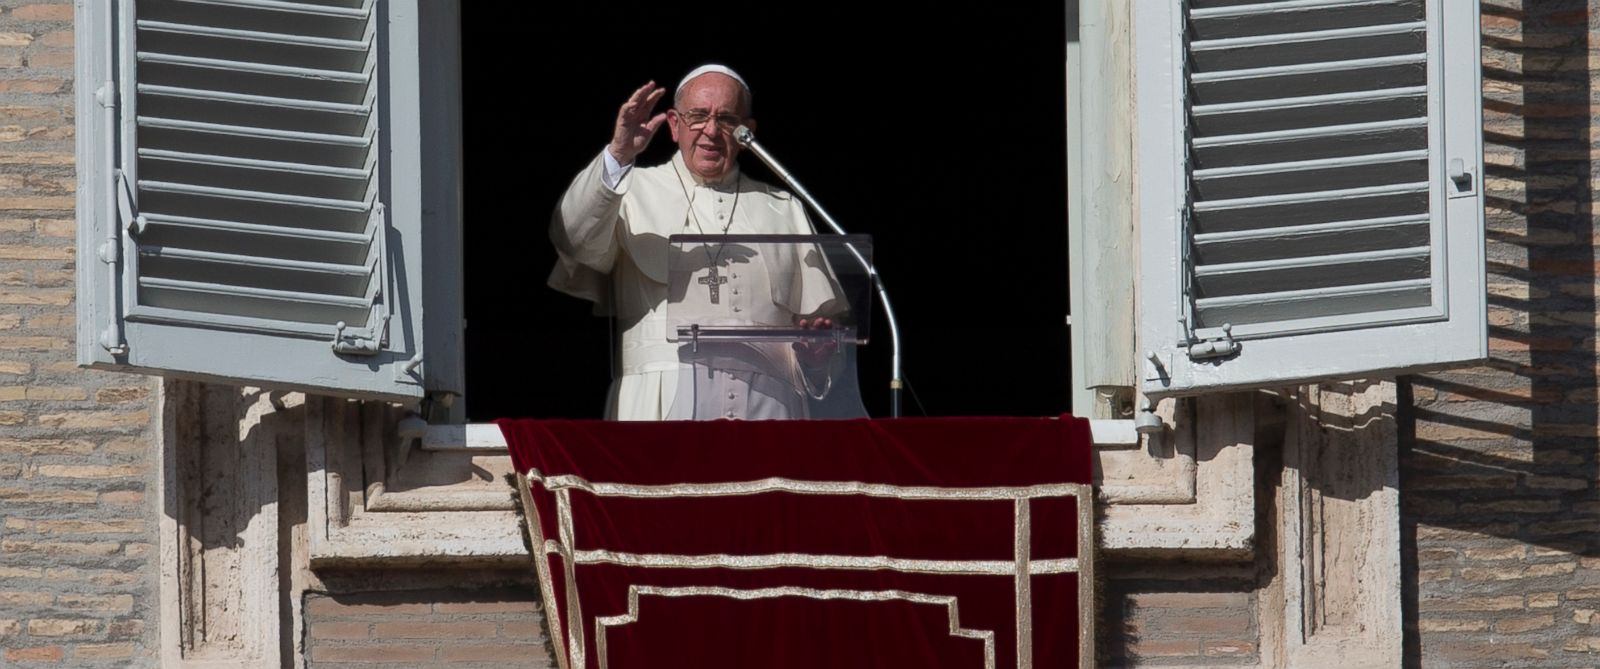 Pope Francis delivers his blessing during the Angelus noon prayer from his studios window overlooking St. Peters Square, at the Vatican, Nov. 16, 2014.